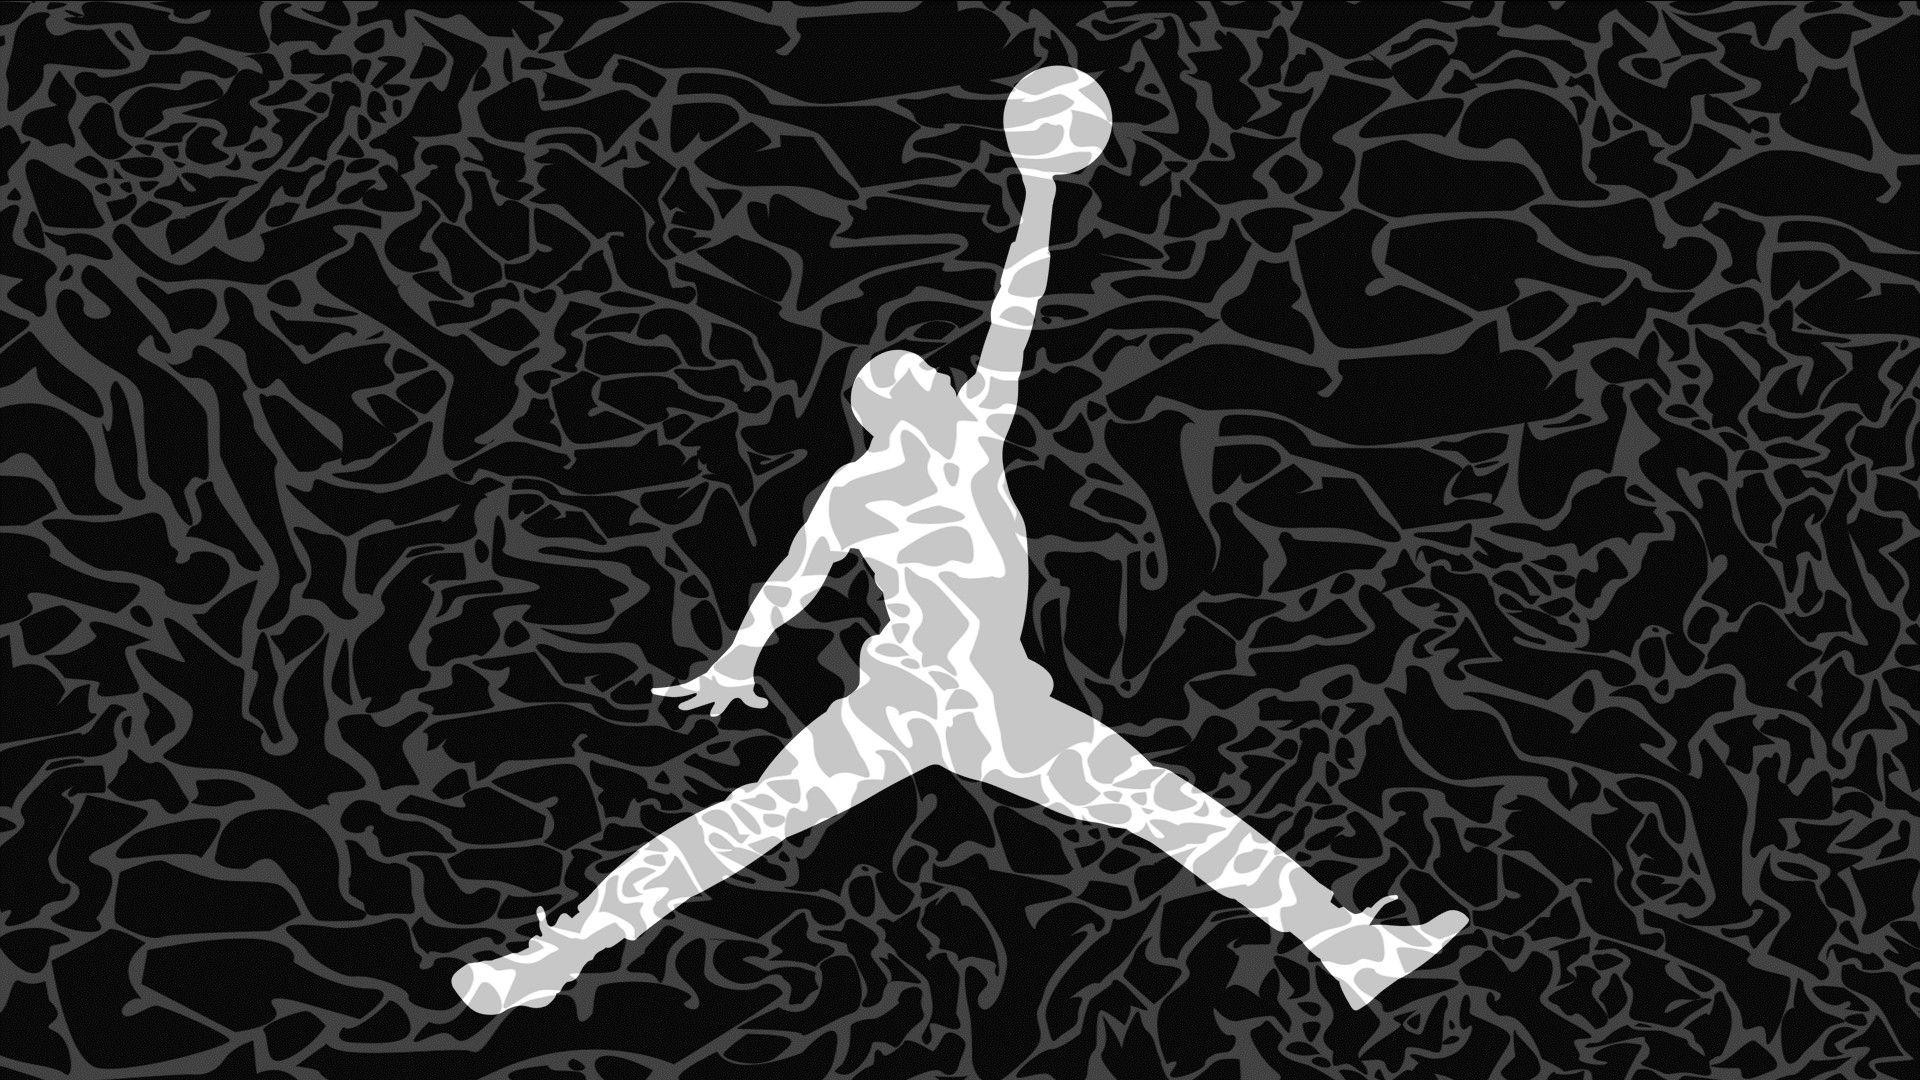 Res: 1920x1080, Air Jordan Logo wallpaper - 949677